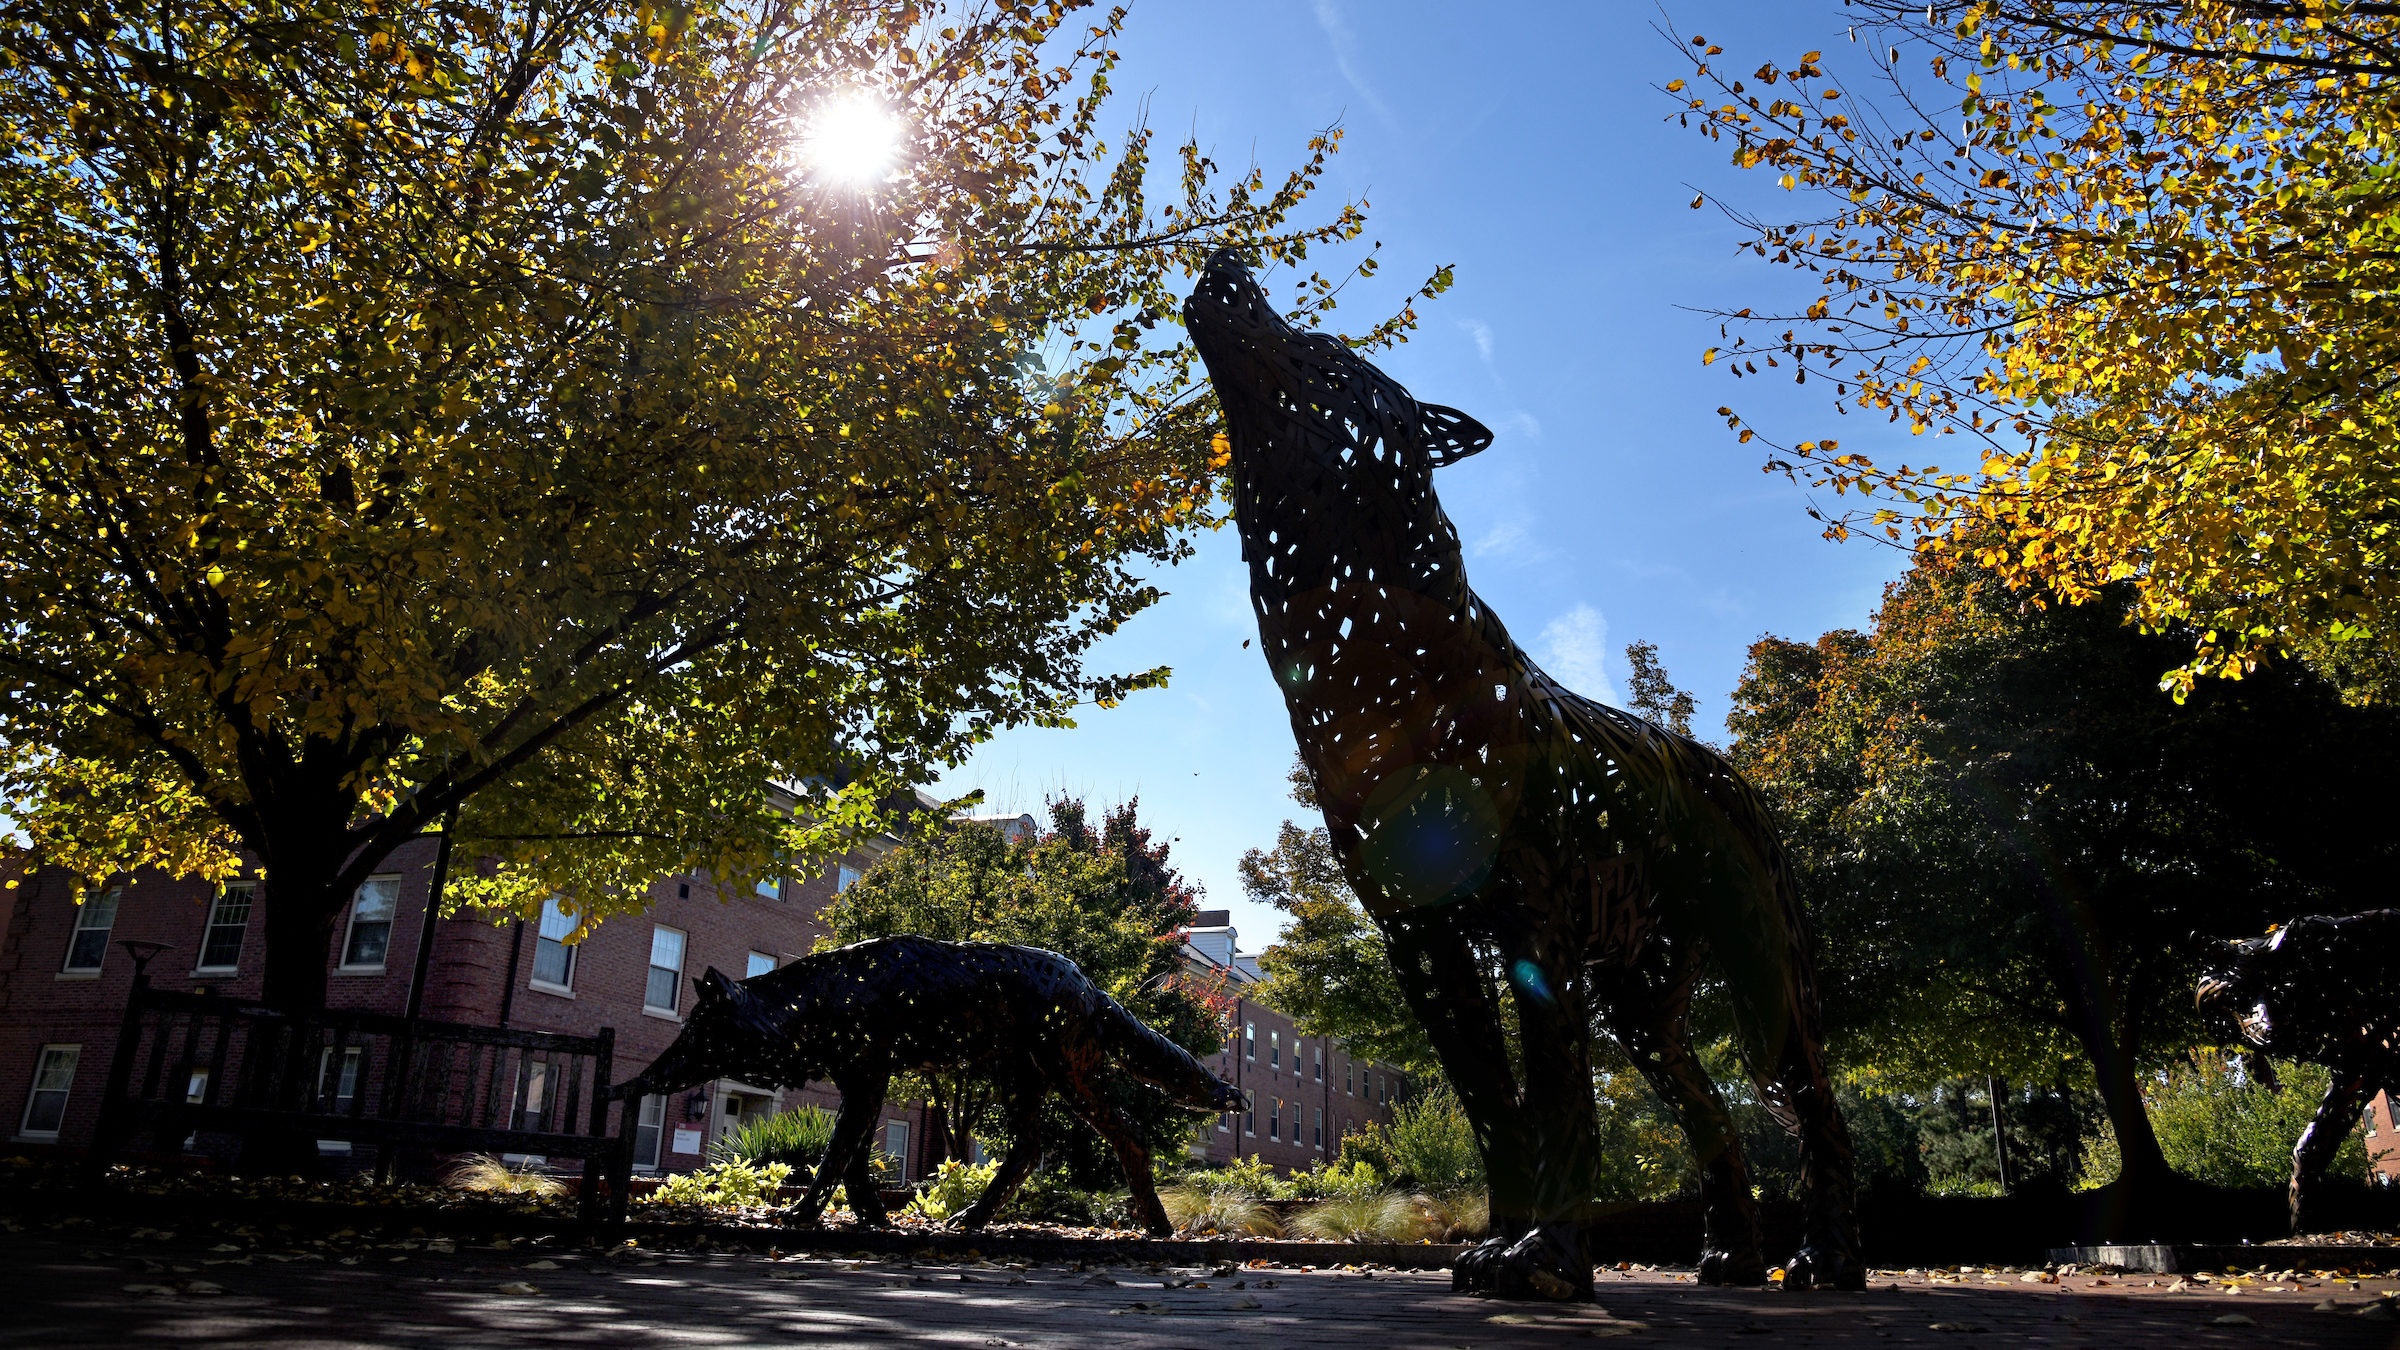 Howling wolf statues on campus